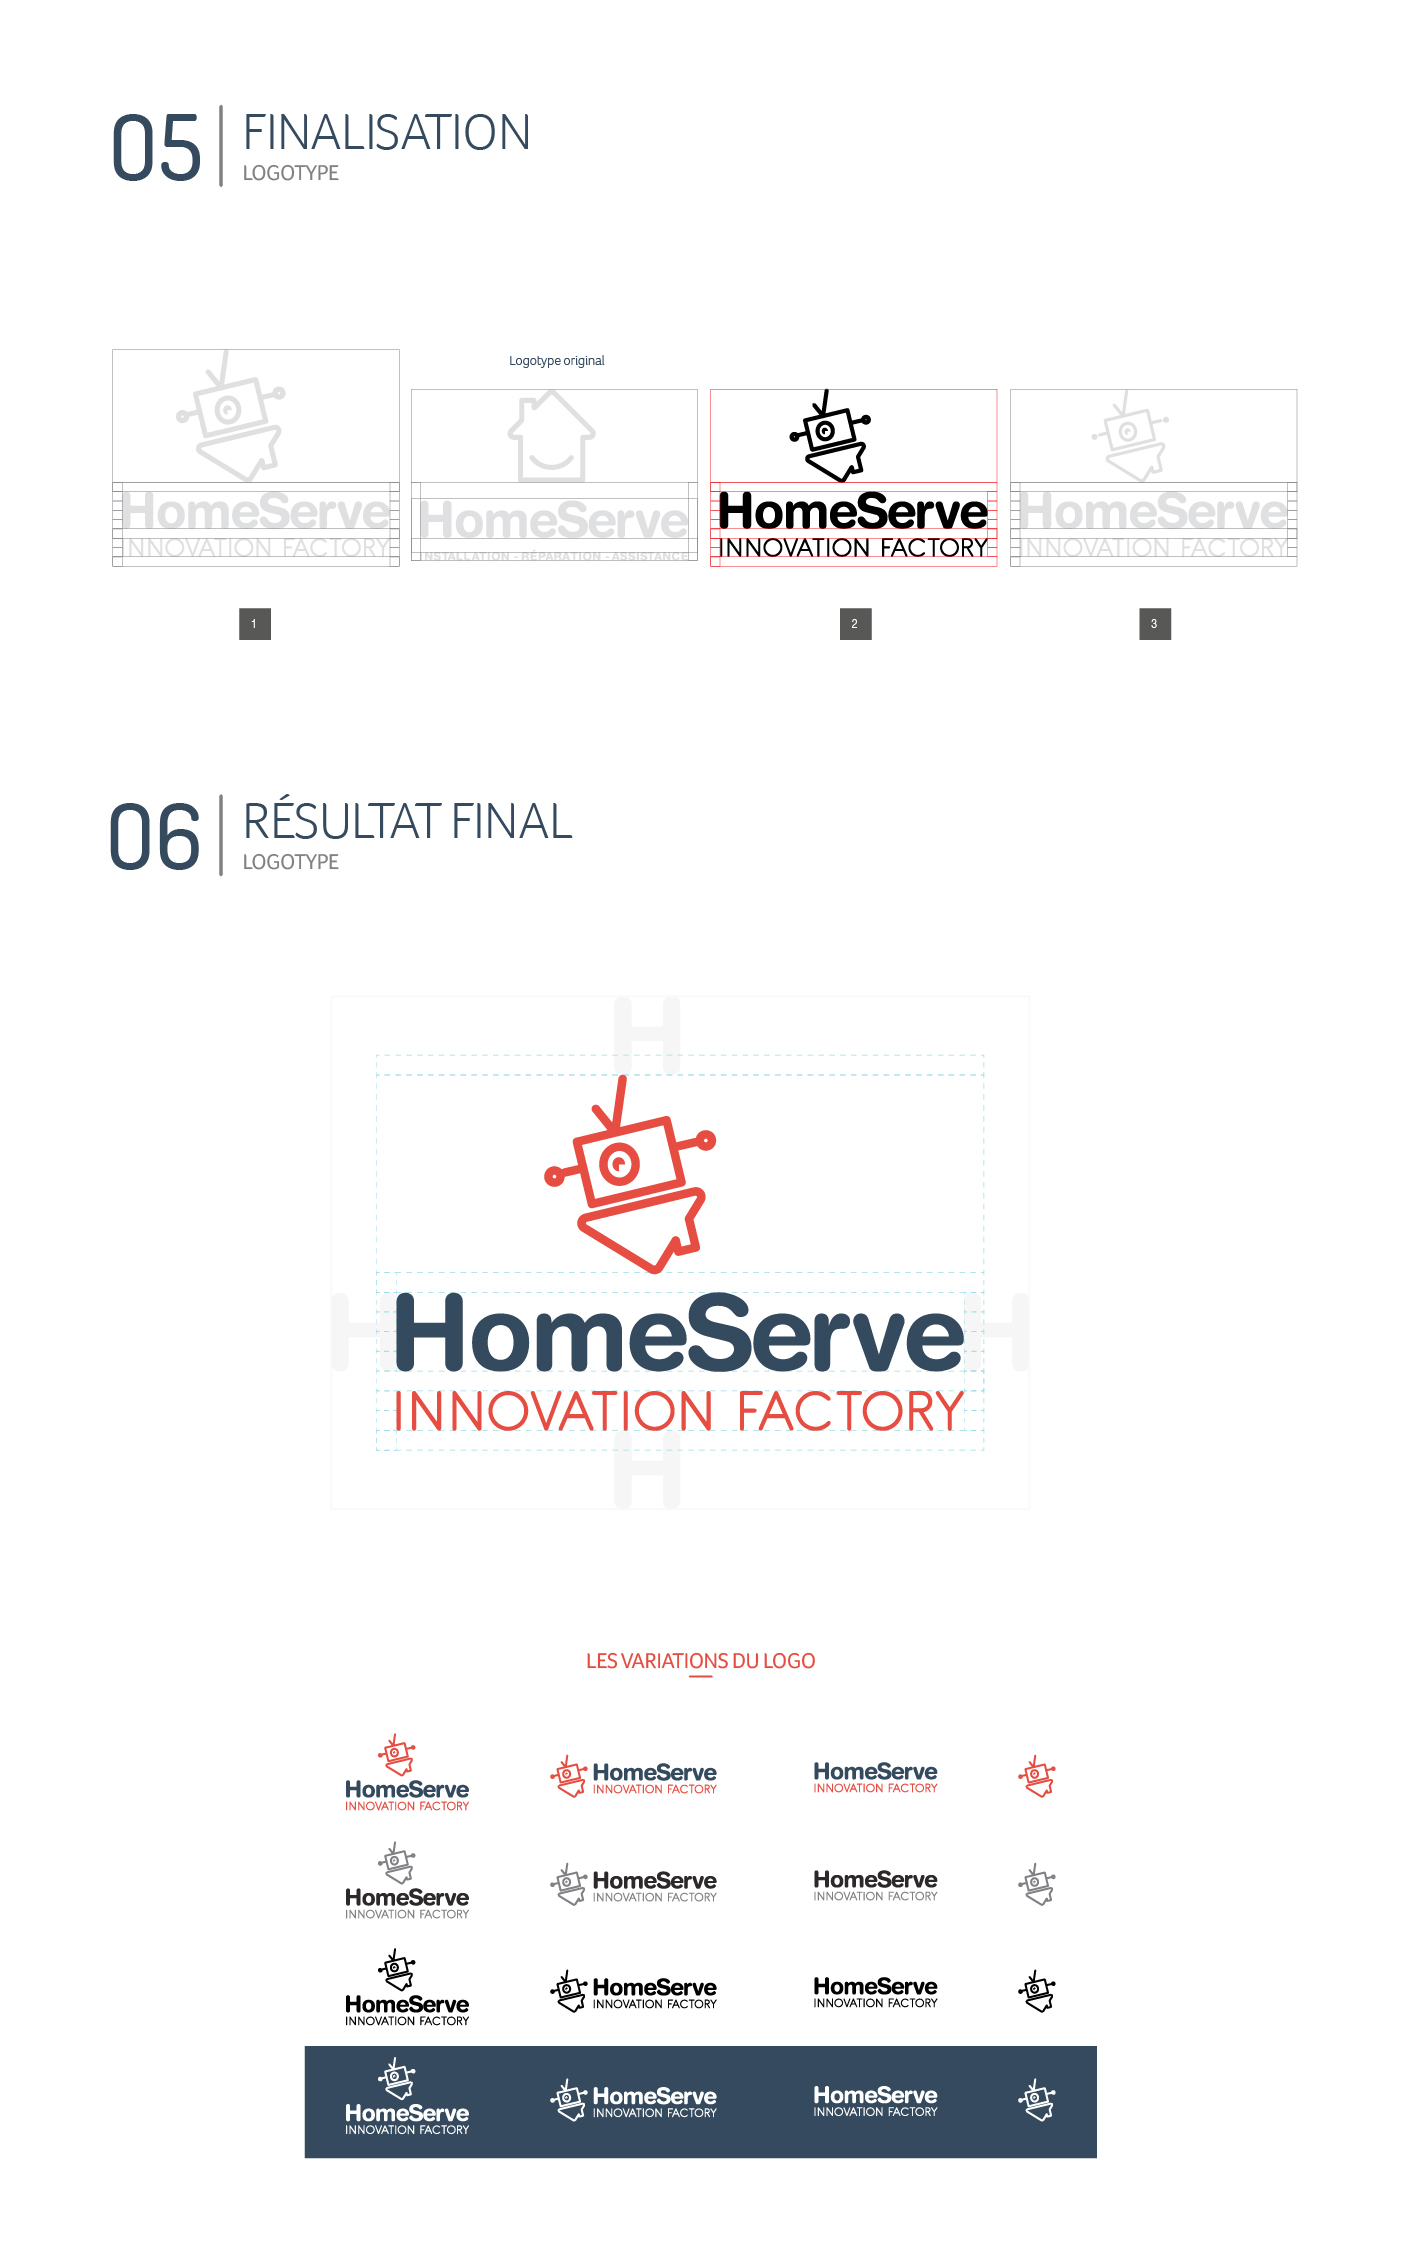 2-homeserve-innovation-factory-assurance_design_graphiqee_logotype_final_construction_variations.jpg